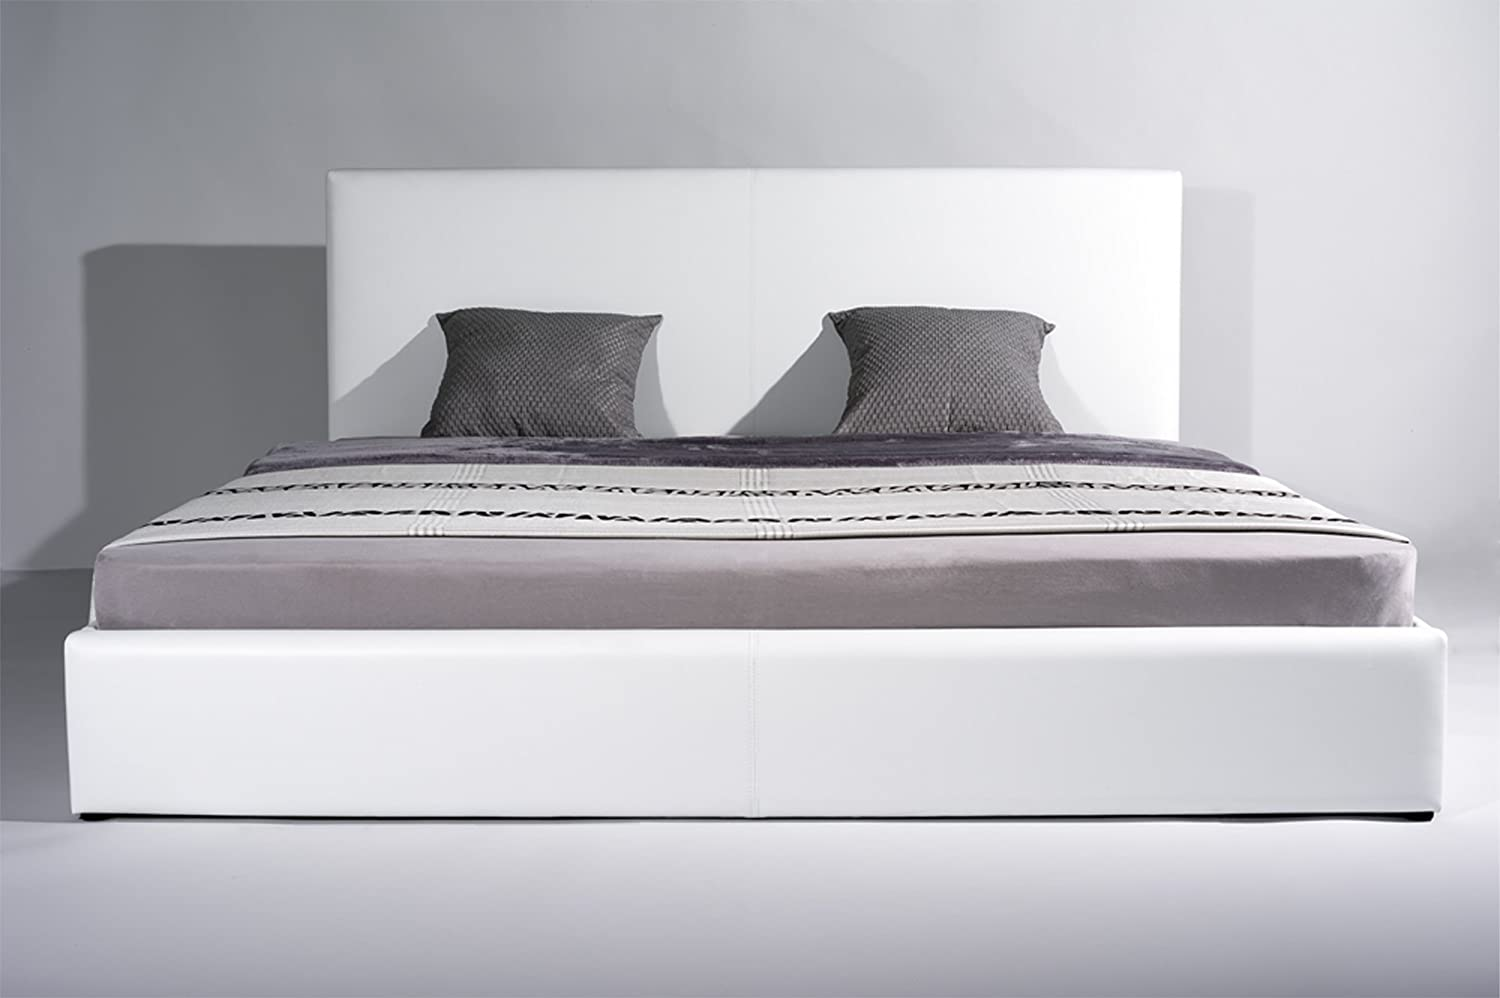 weies doppelbett great weies doppelbett with weies doppelbett cool bett vargo mdf weiss. Black Bedroom Furniture Sets. Home Design Ideas